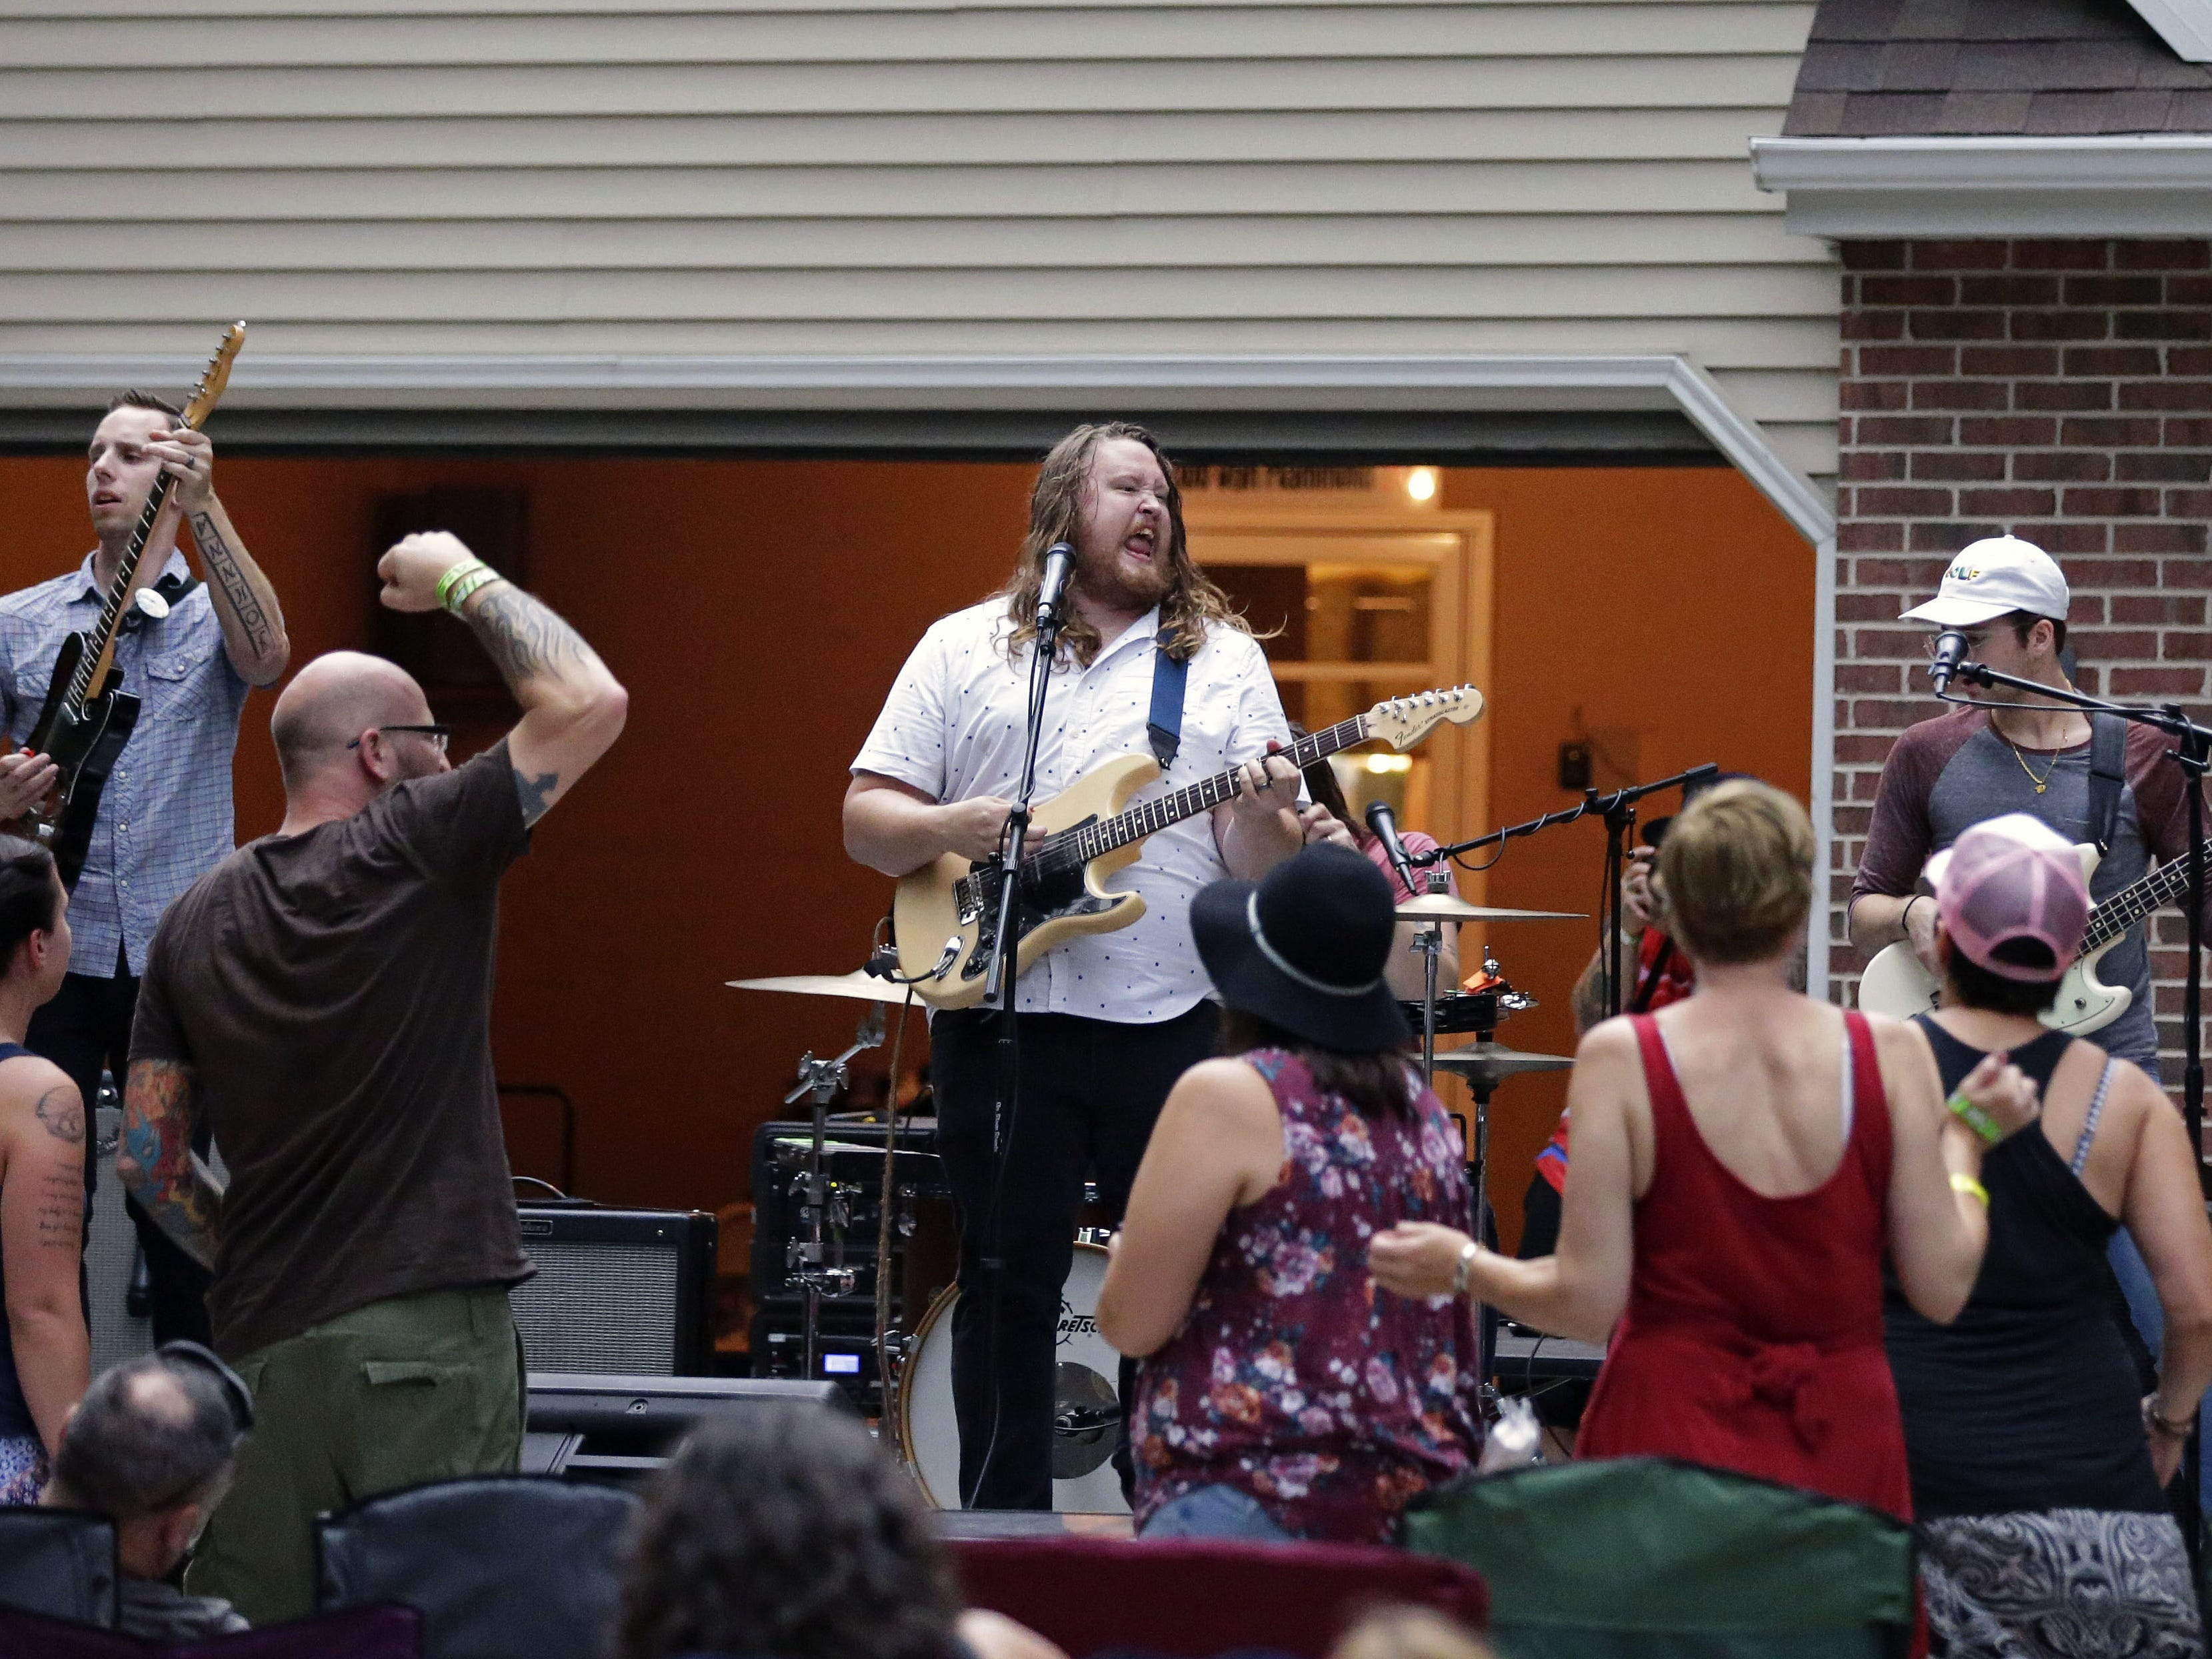 Me Like Bees perform in the driveway of Todd Van Hammond in late August. The Appleton man hosted a Sunday afternoon block party featuring three bands last month.